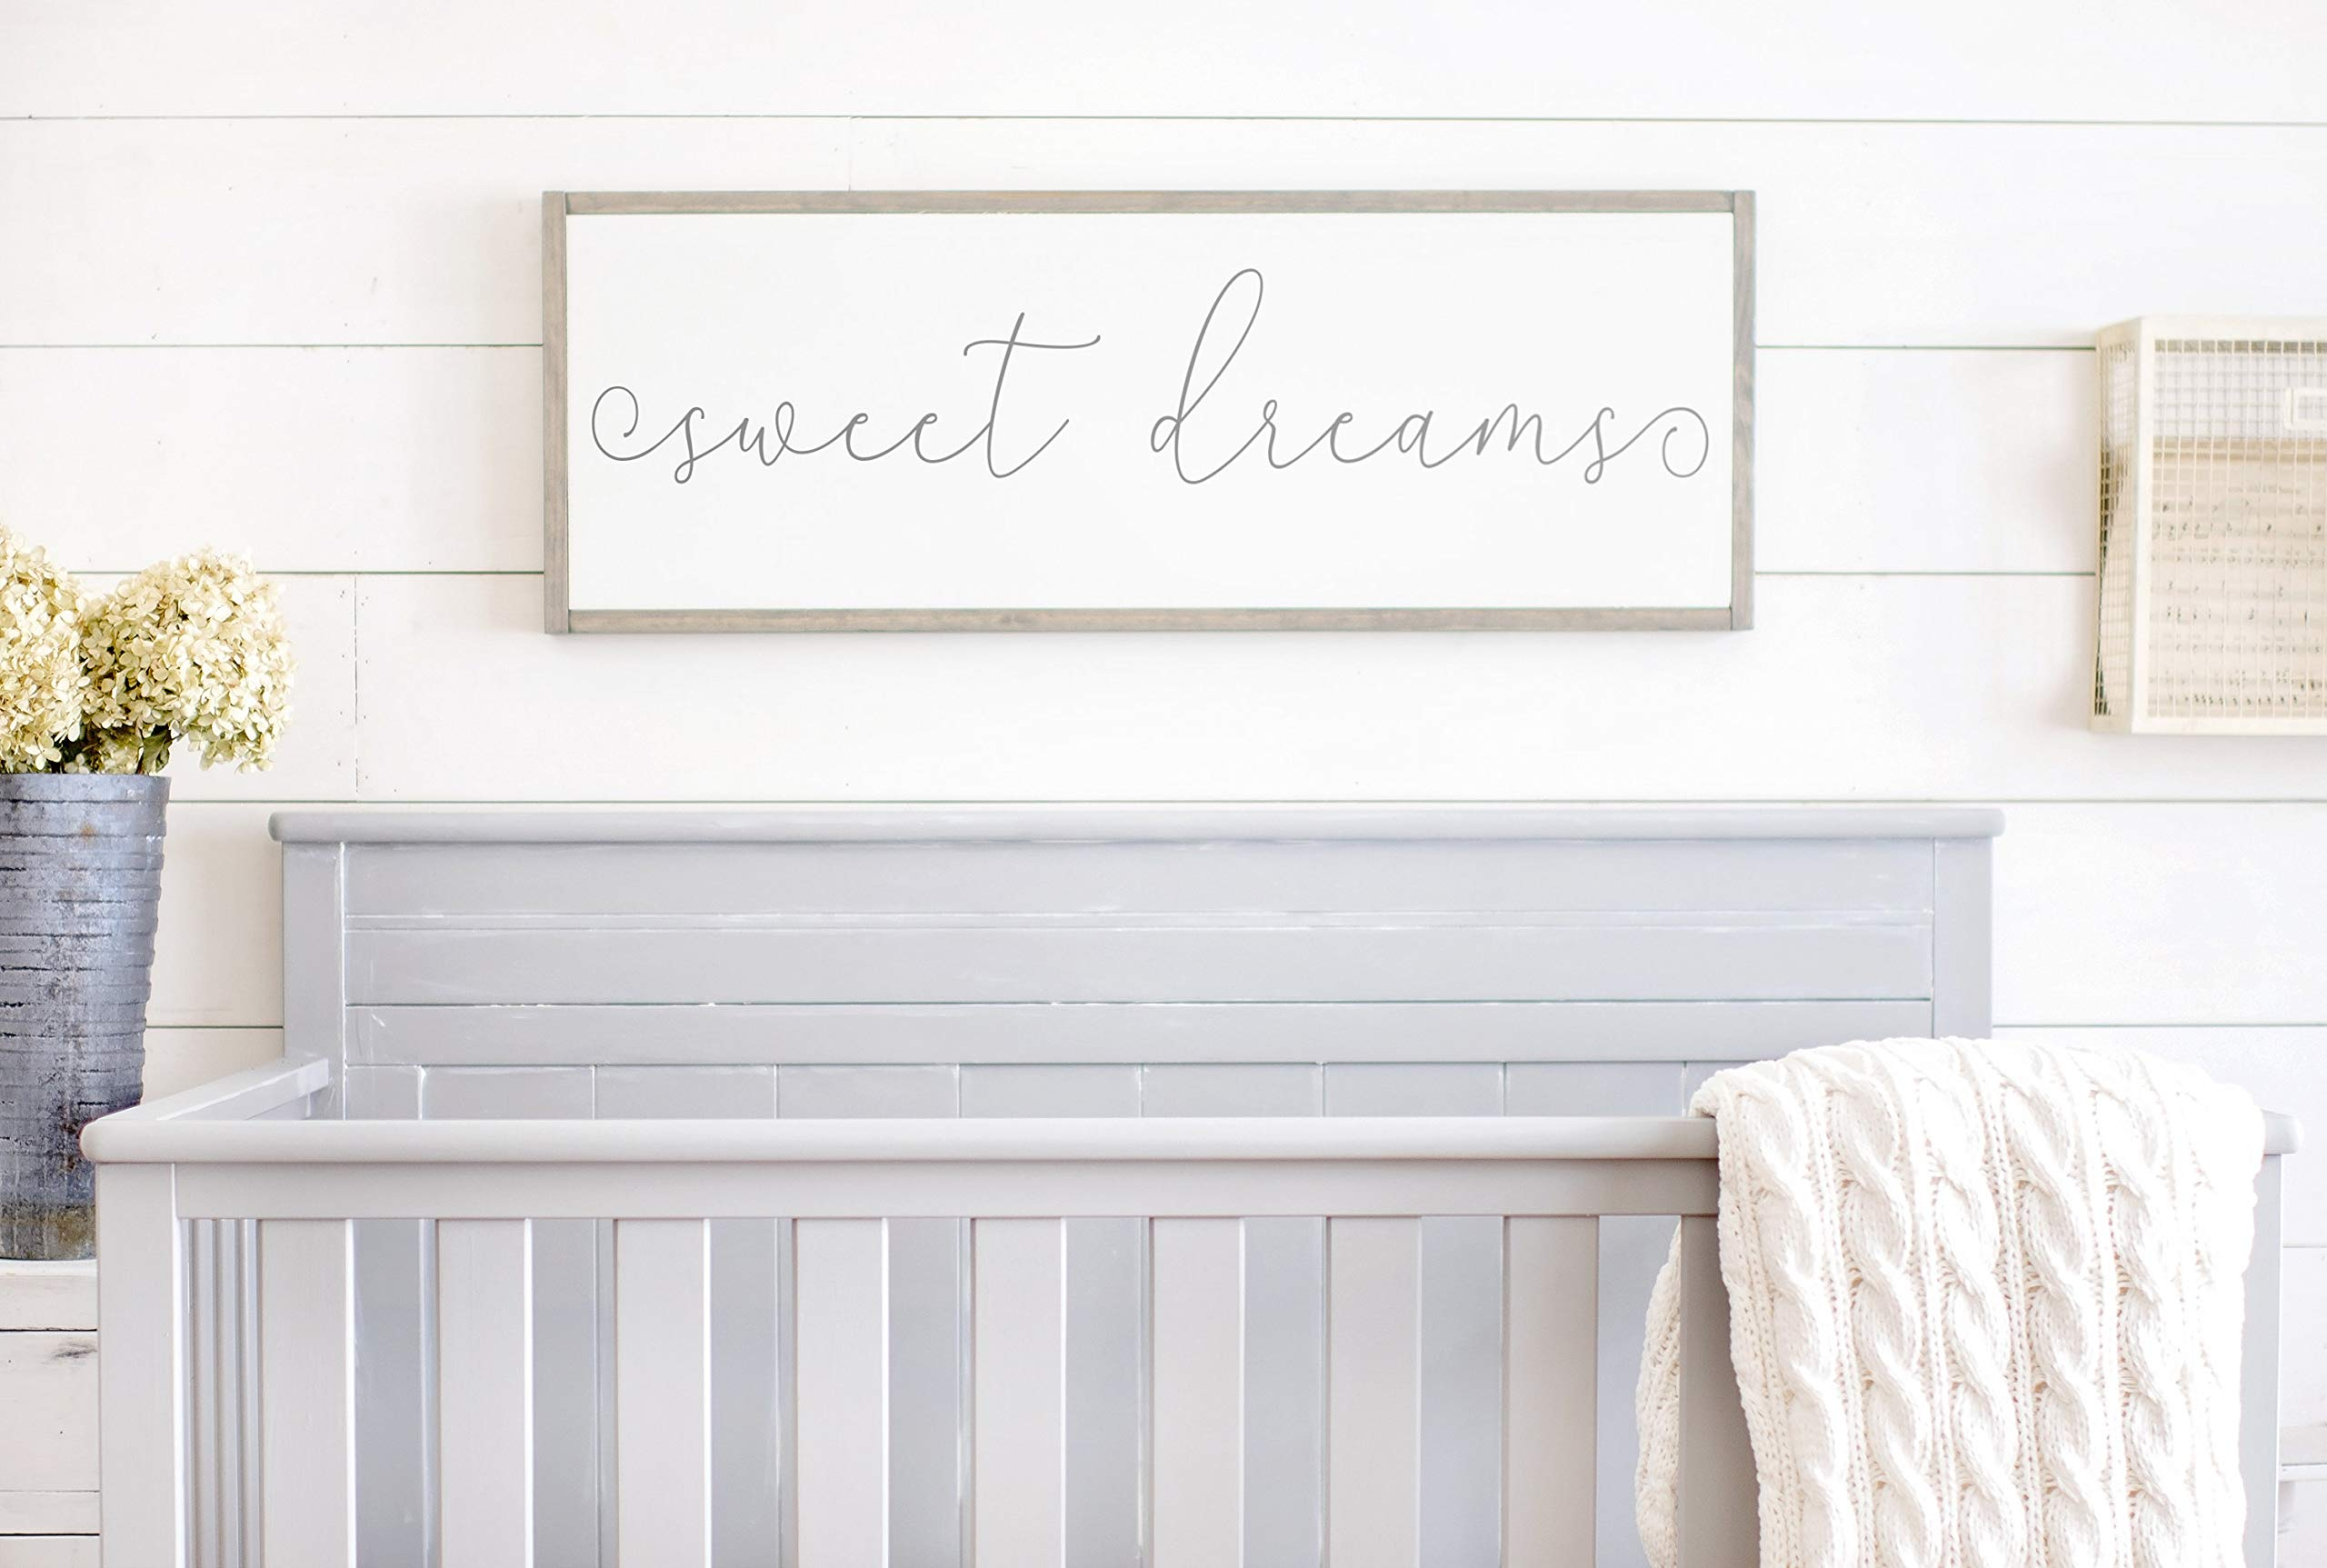 Bruyu5se Framed Wood Sign Rustic Wooden Sign Sweet Dreams Sign Above Crib Sign Sign for Above Crib Sweet Dreams Wood Sign Sweet Dreams Nursery Sign 6 x 20 Inch Decorative Sign Home Decor by Bruyu5se